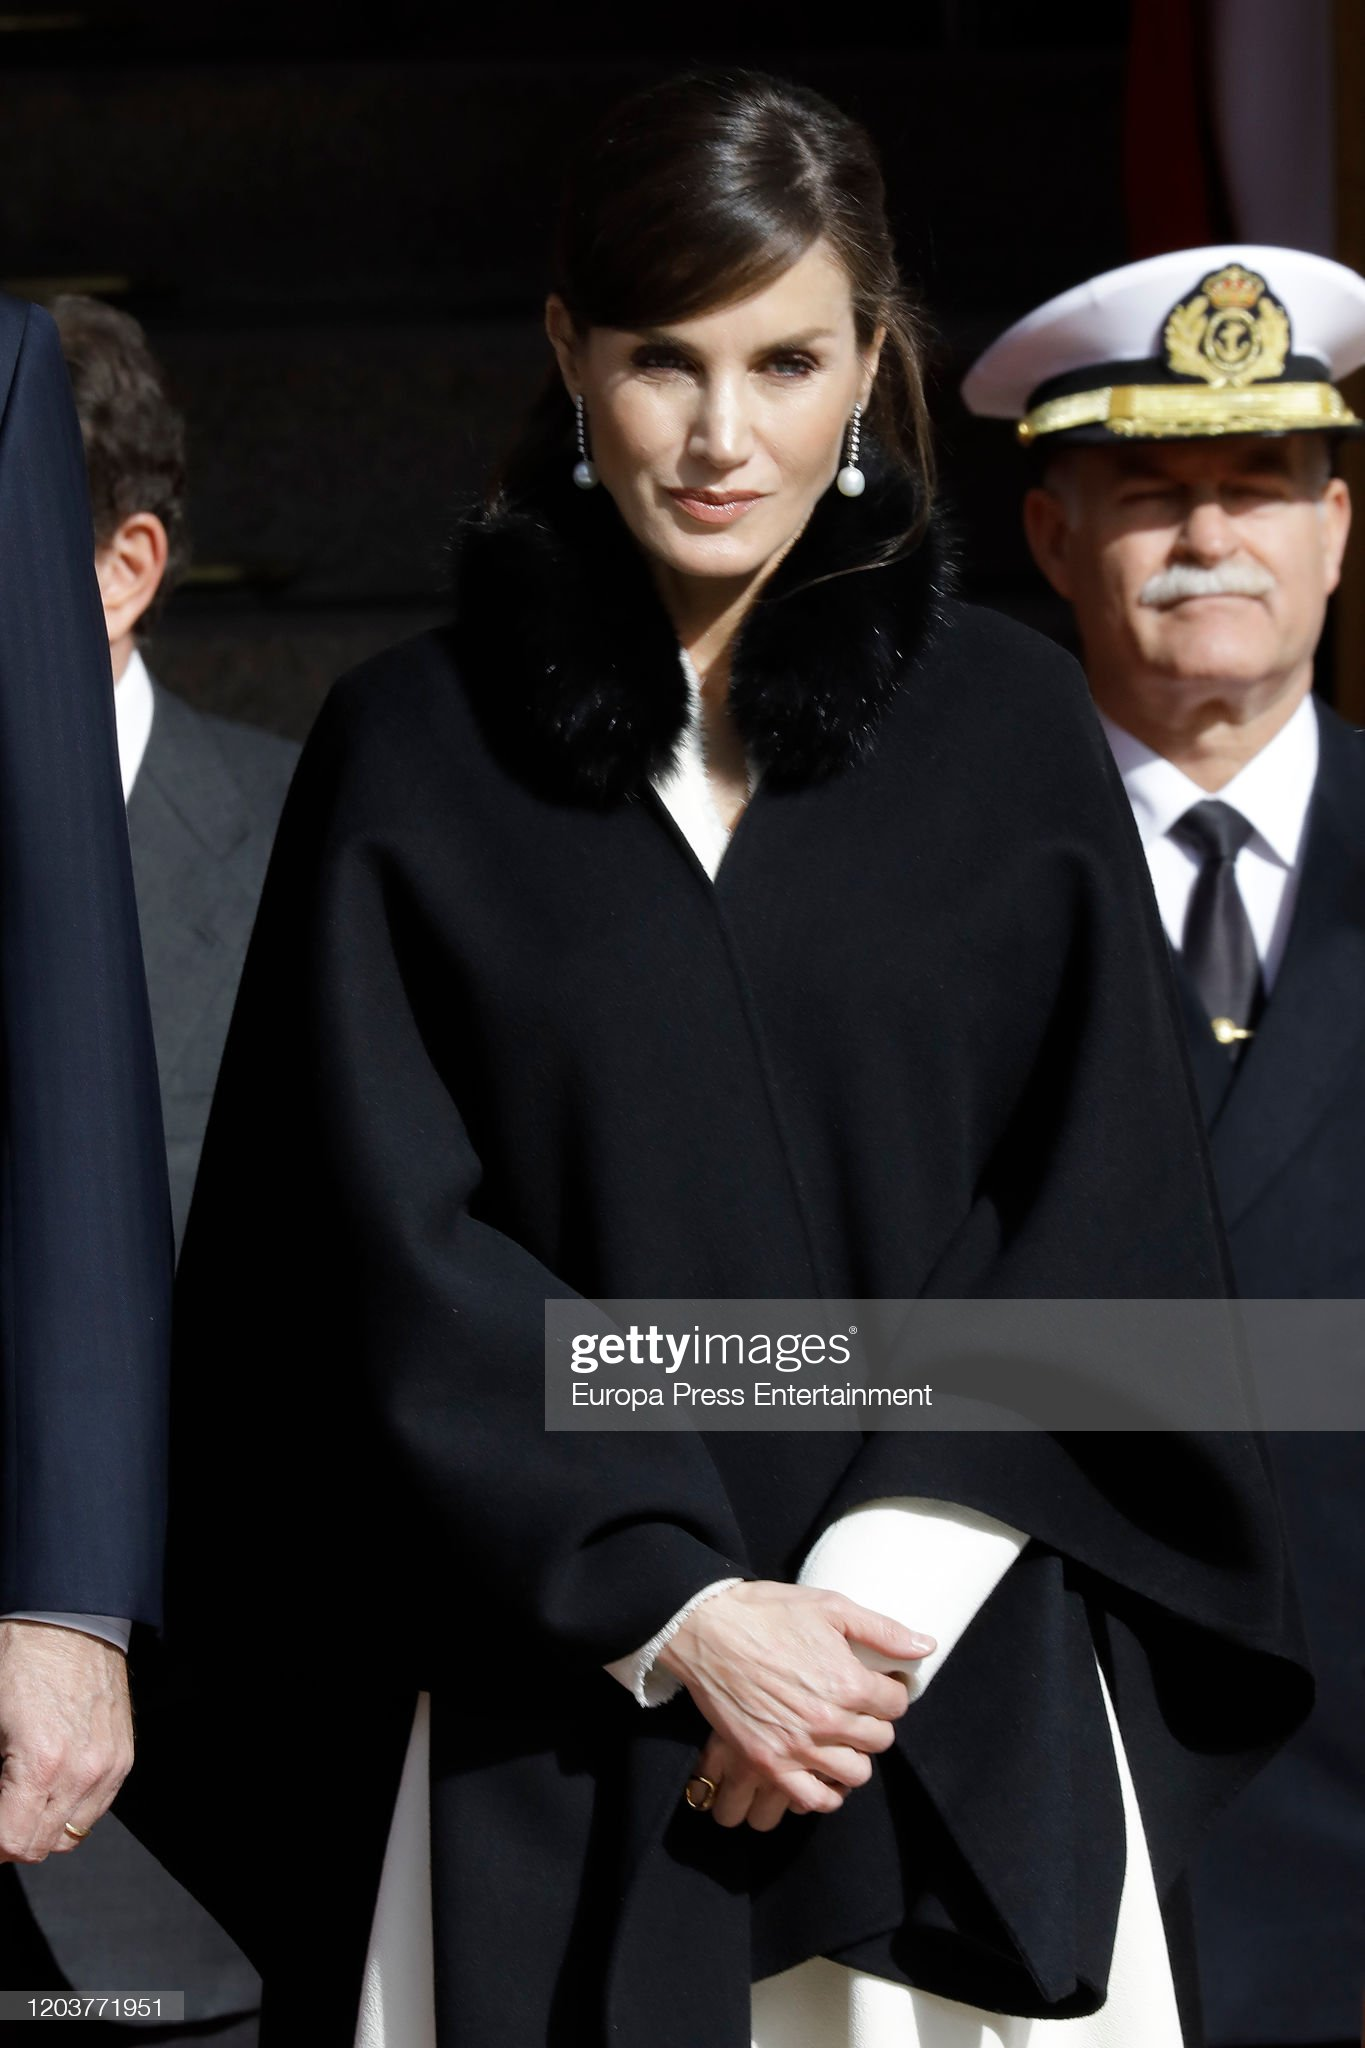 https://media.gettyimages.com/photos/queen-letizia-of-spain-attends-the-solemn-opening-of-the-14th-at-the-picture-id1203771951?s=2048x2048